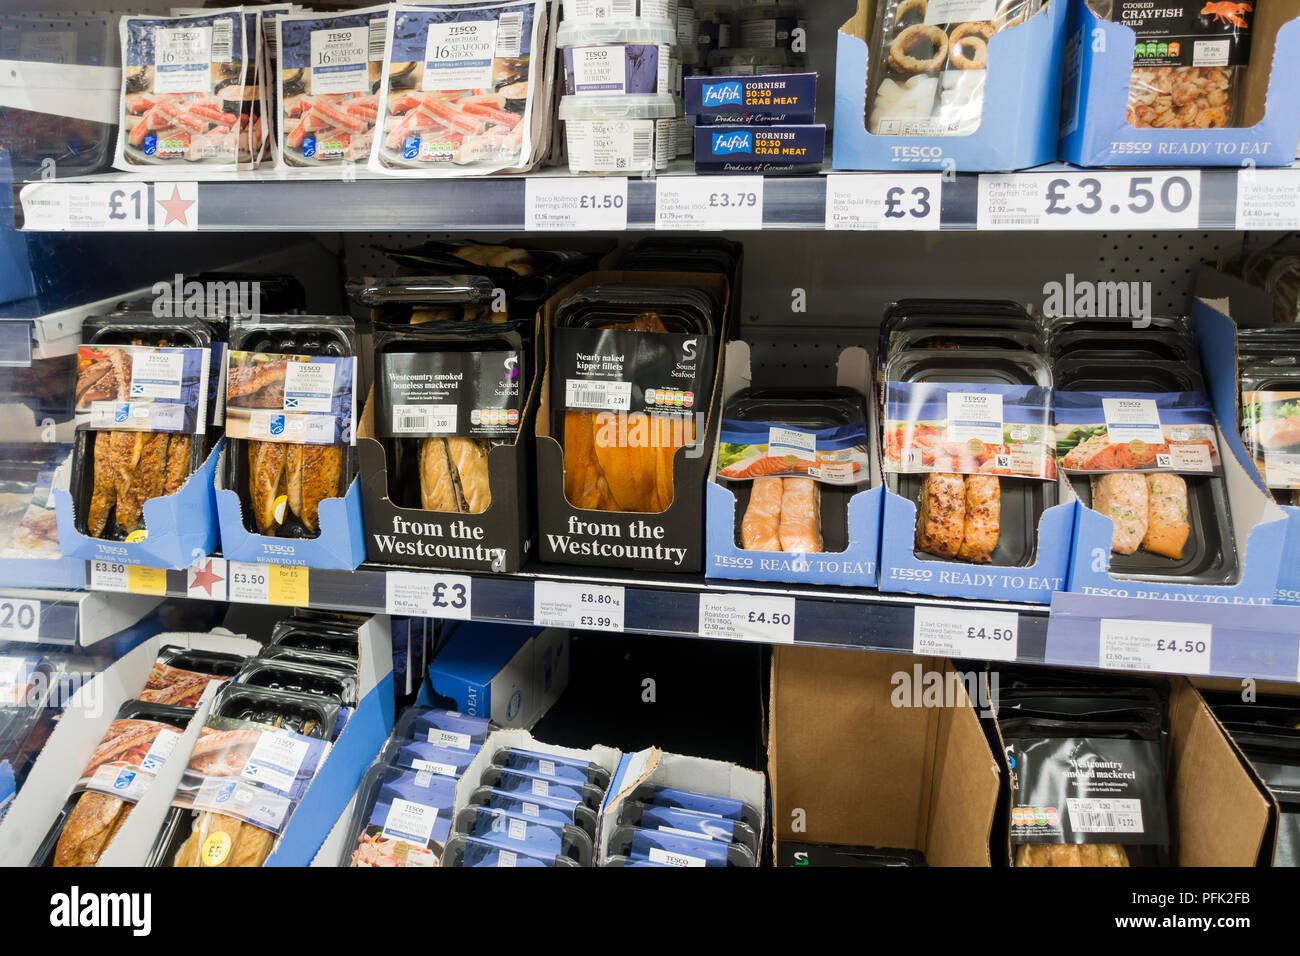 Oily fish in plastic packaging for sale in a Tesco supermarket, United Kingdom - Stock Image